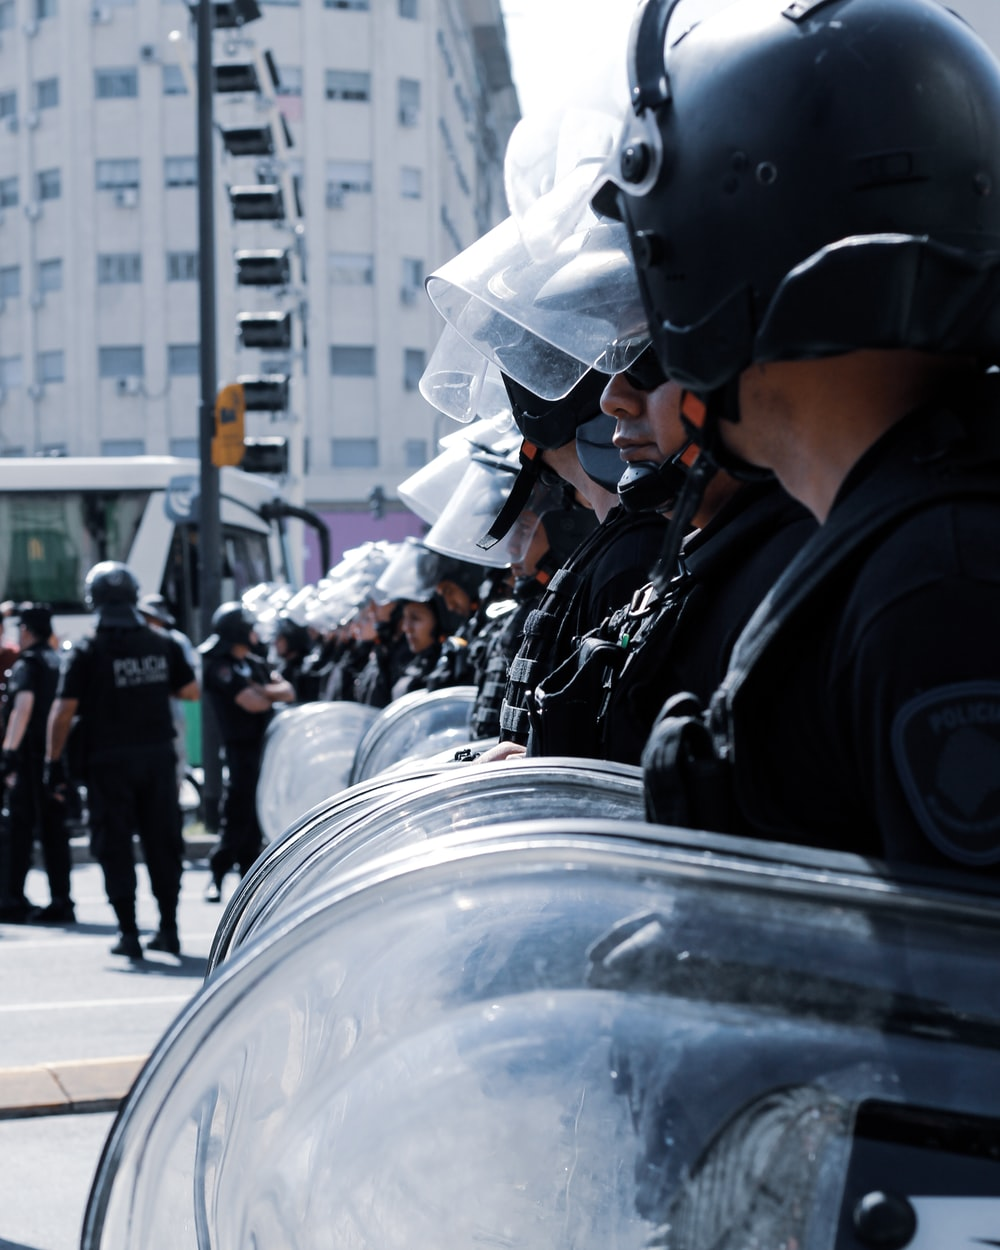 police guarding the street